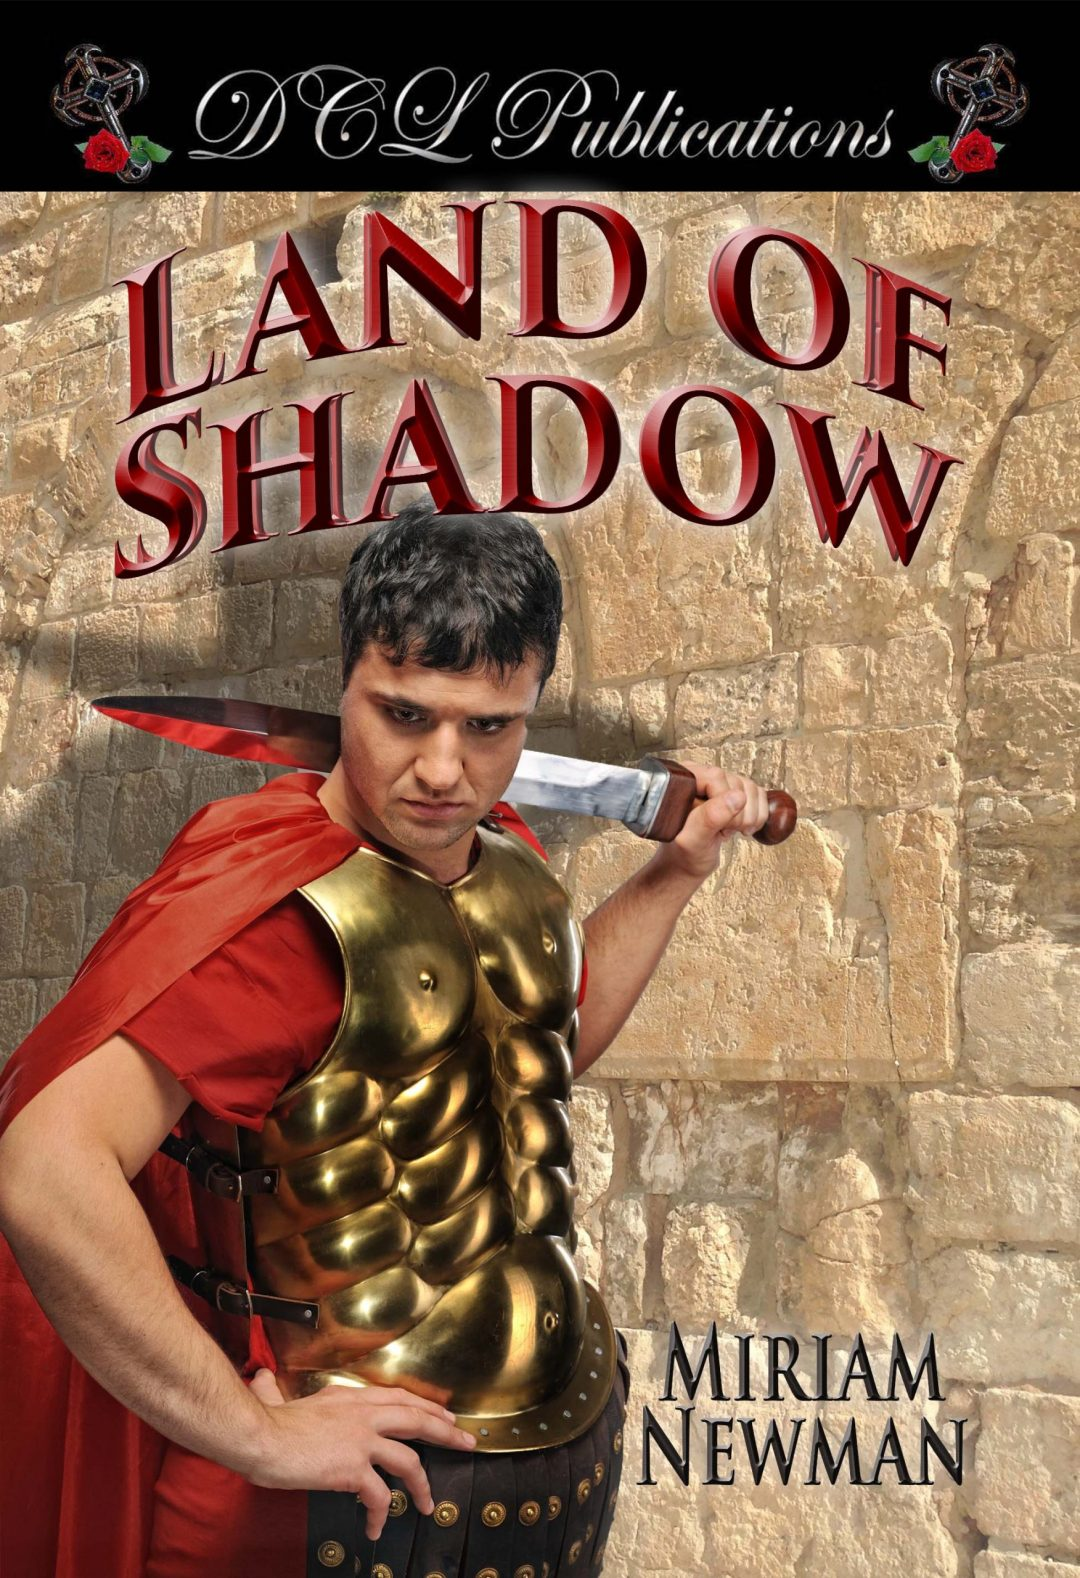 Land of Shadow by Miriam Newman